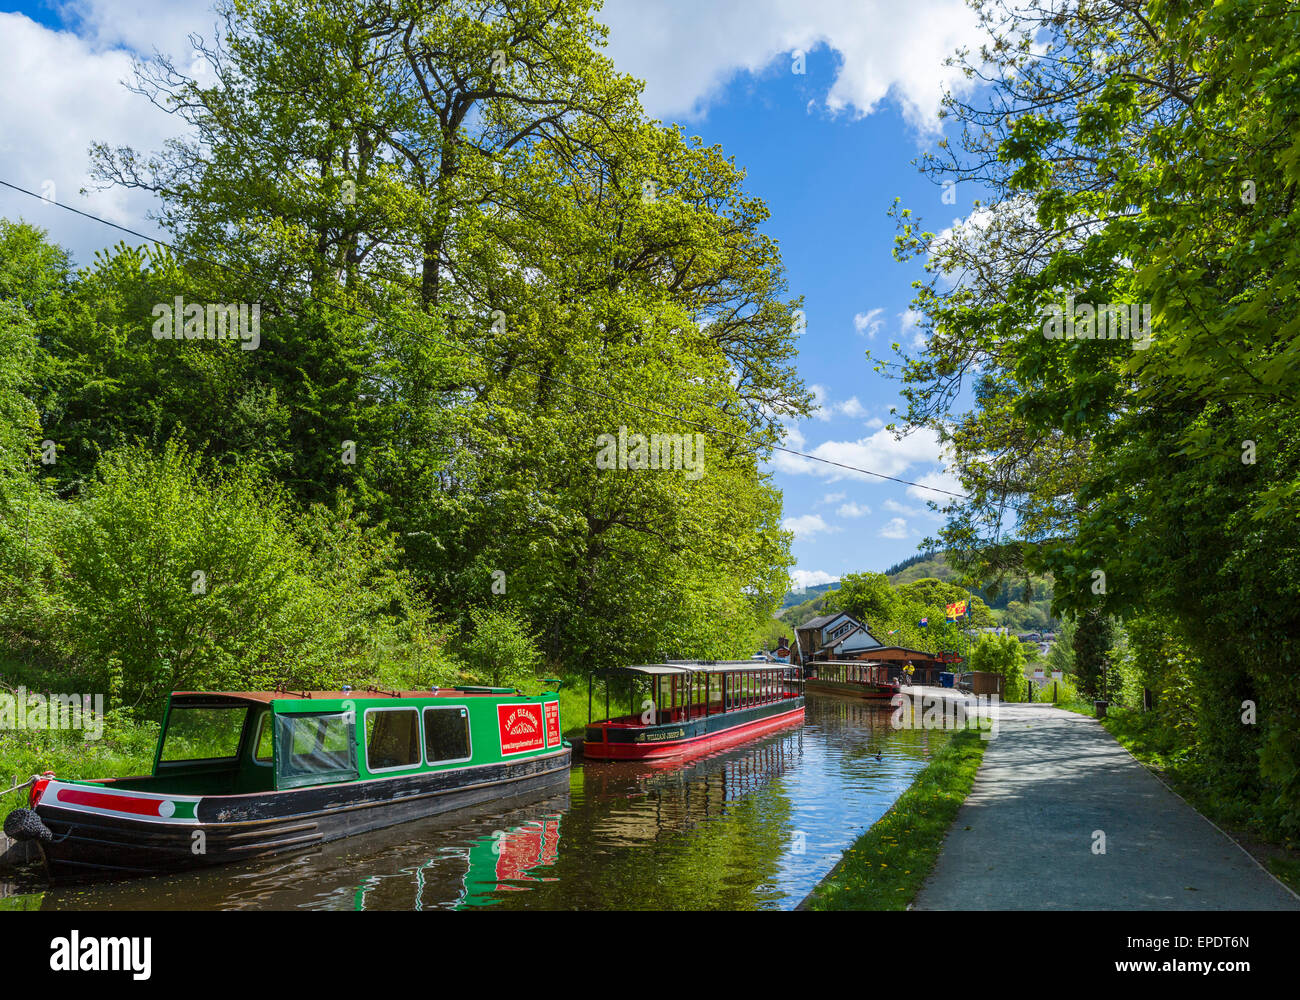 Narrowboats on the Llangollen Canal in the town centre, Llangollen, Denbighshire, Wales, UK - Stock Image